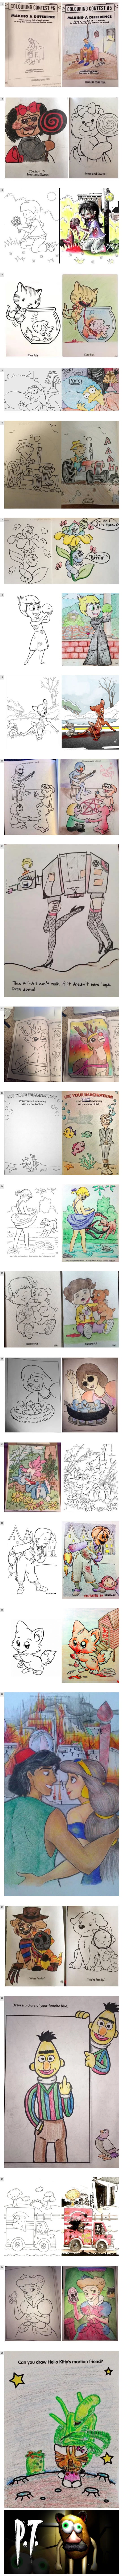 Corrupted Coloring Books Are As Dark They Hilarious